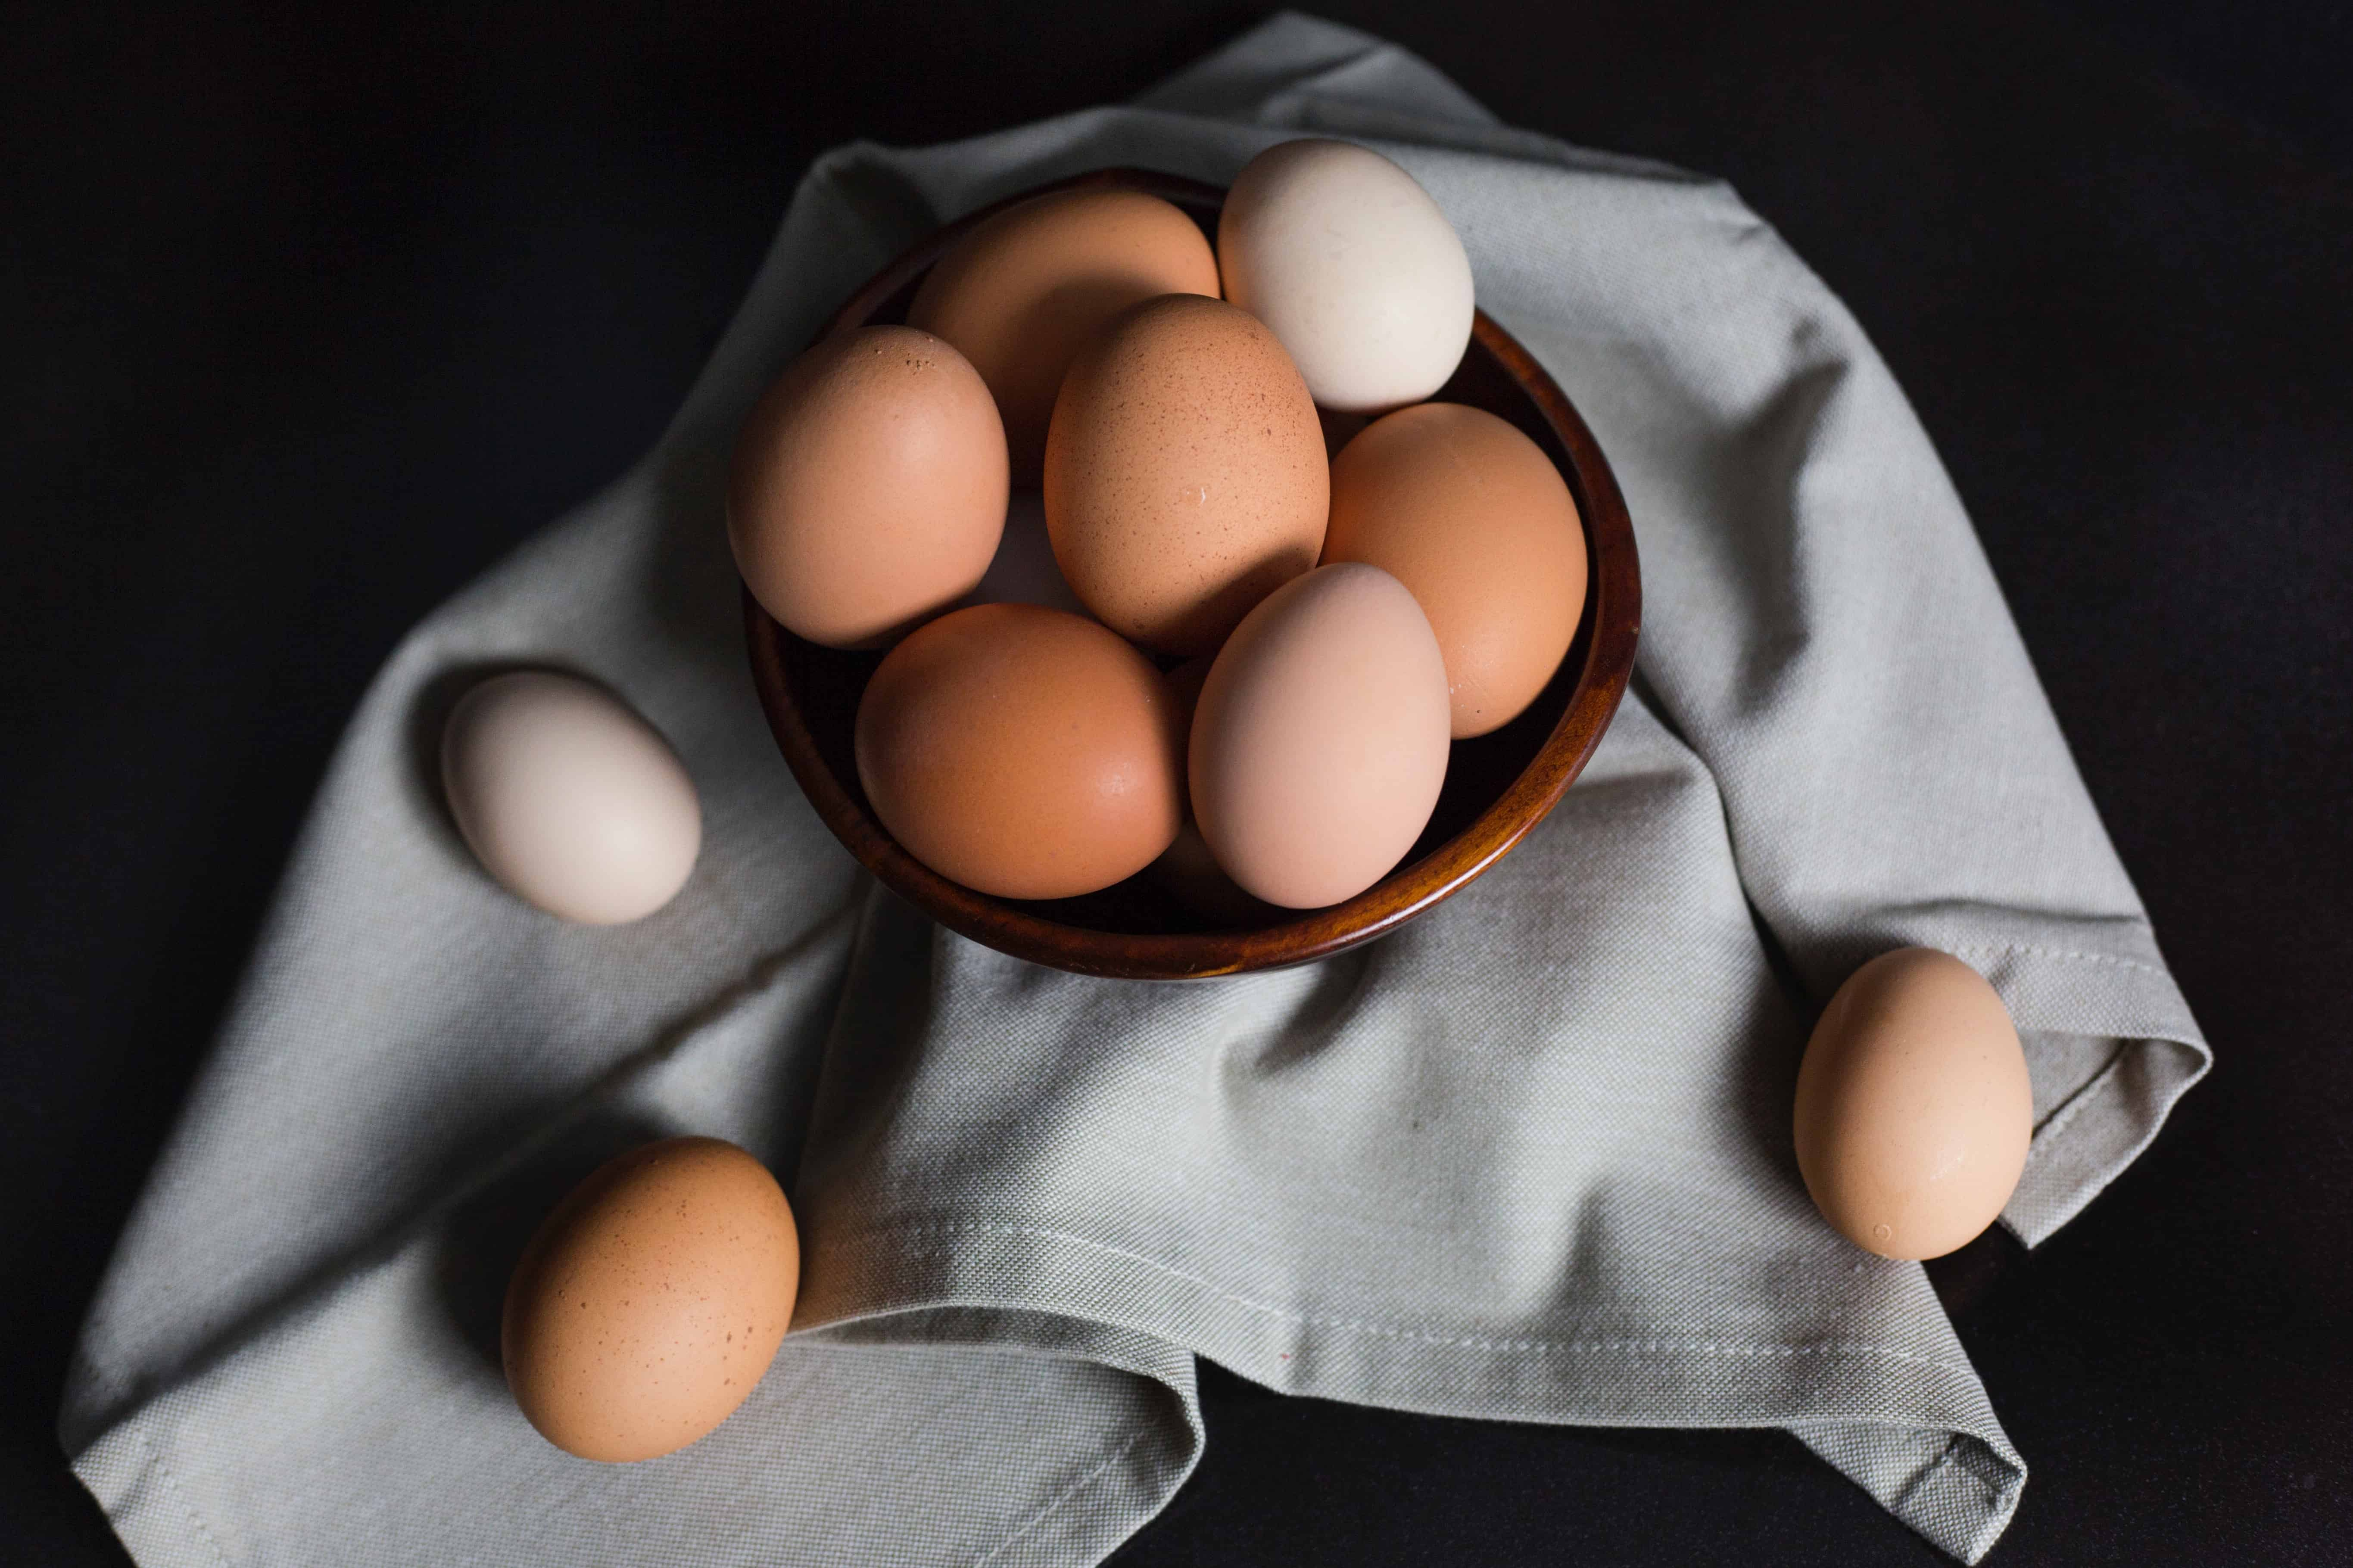 eggs facts